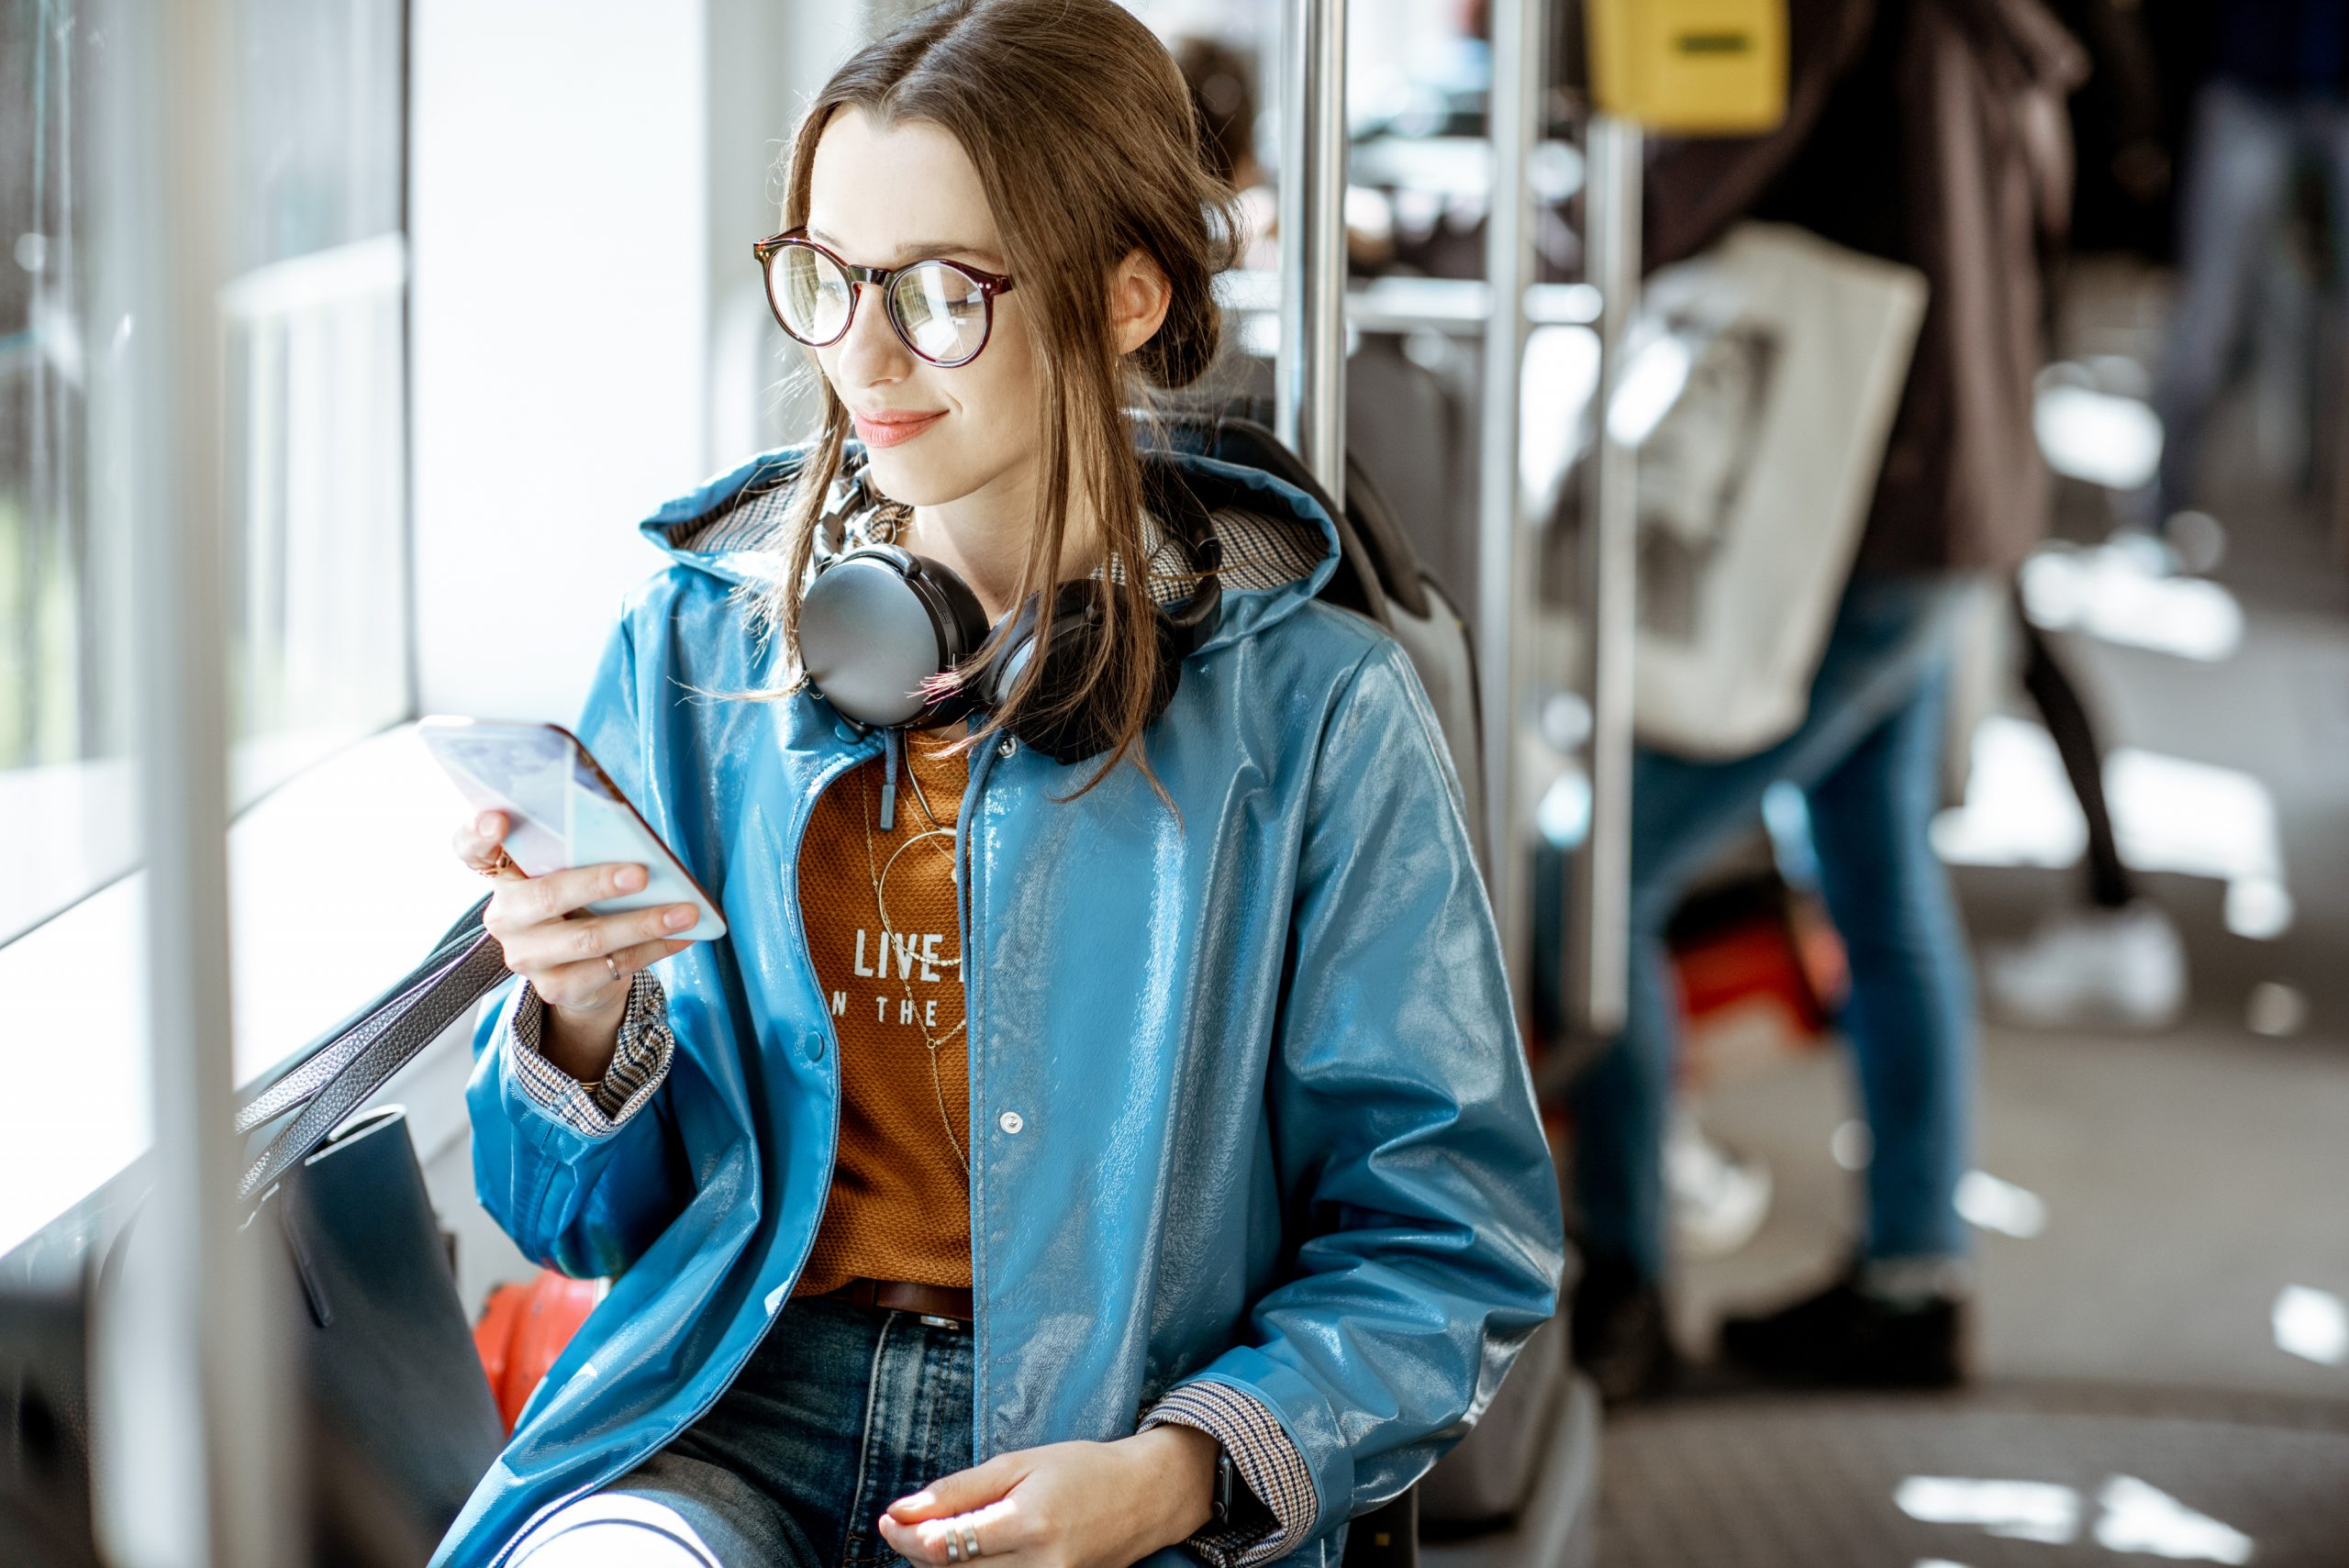 Young stylish woman using public transport, sitting with phone and headphones in the modern tram